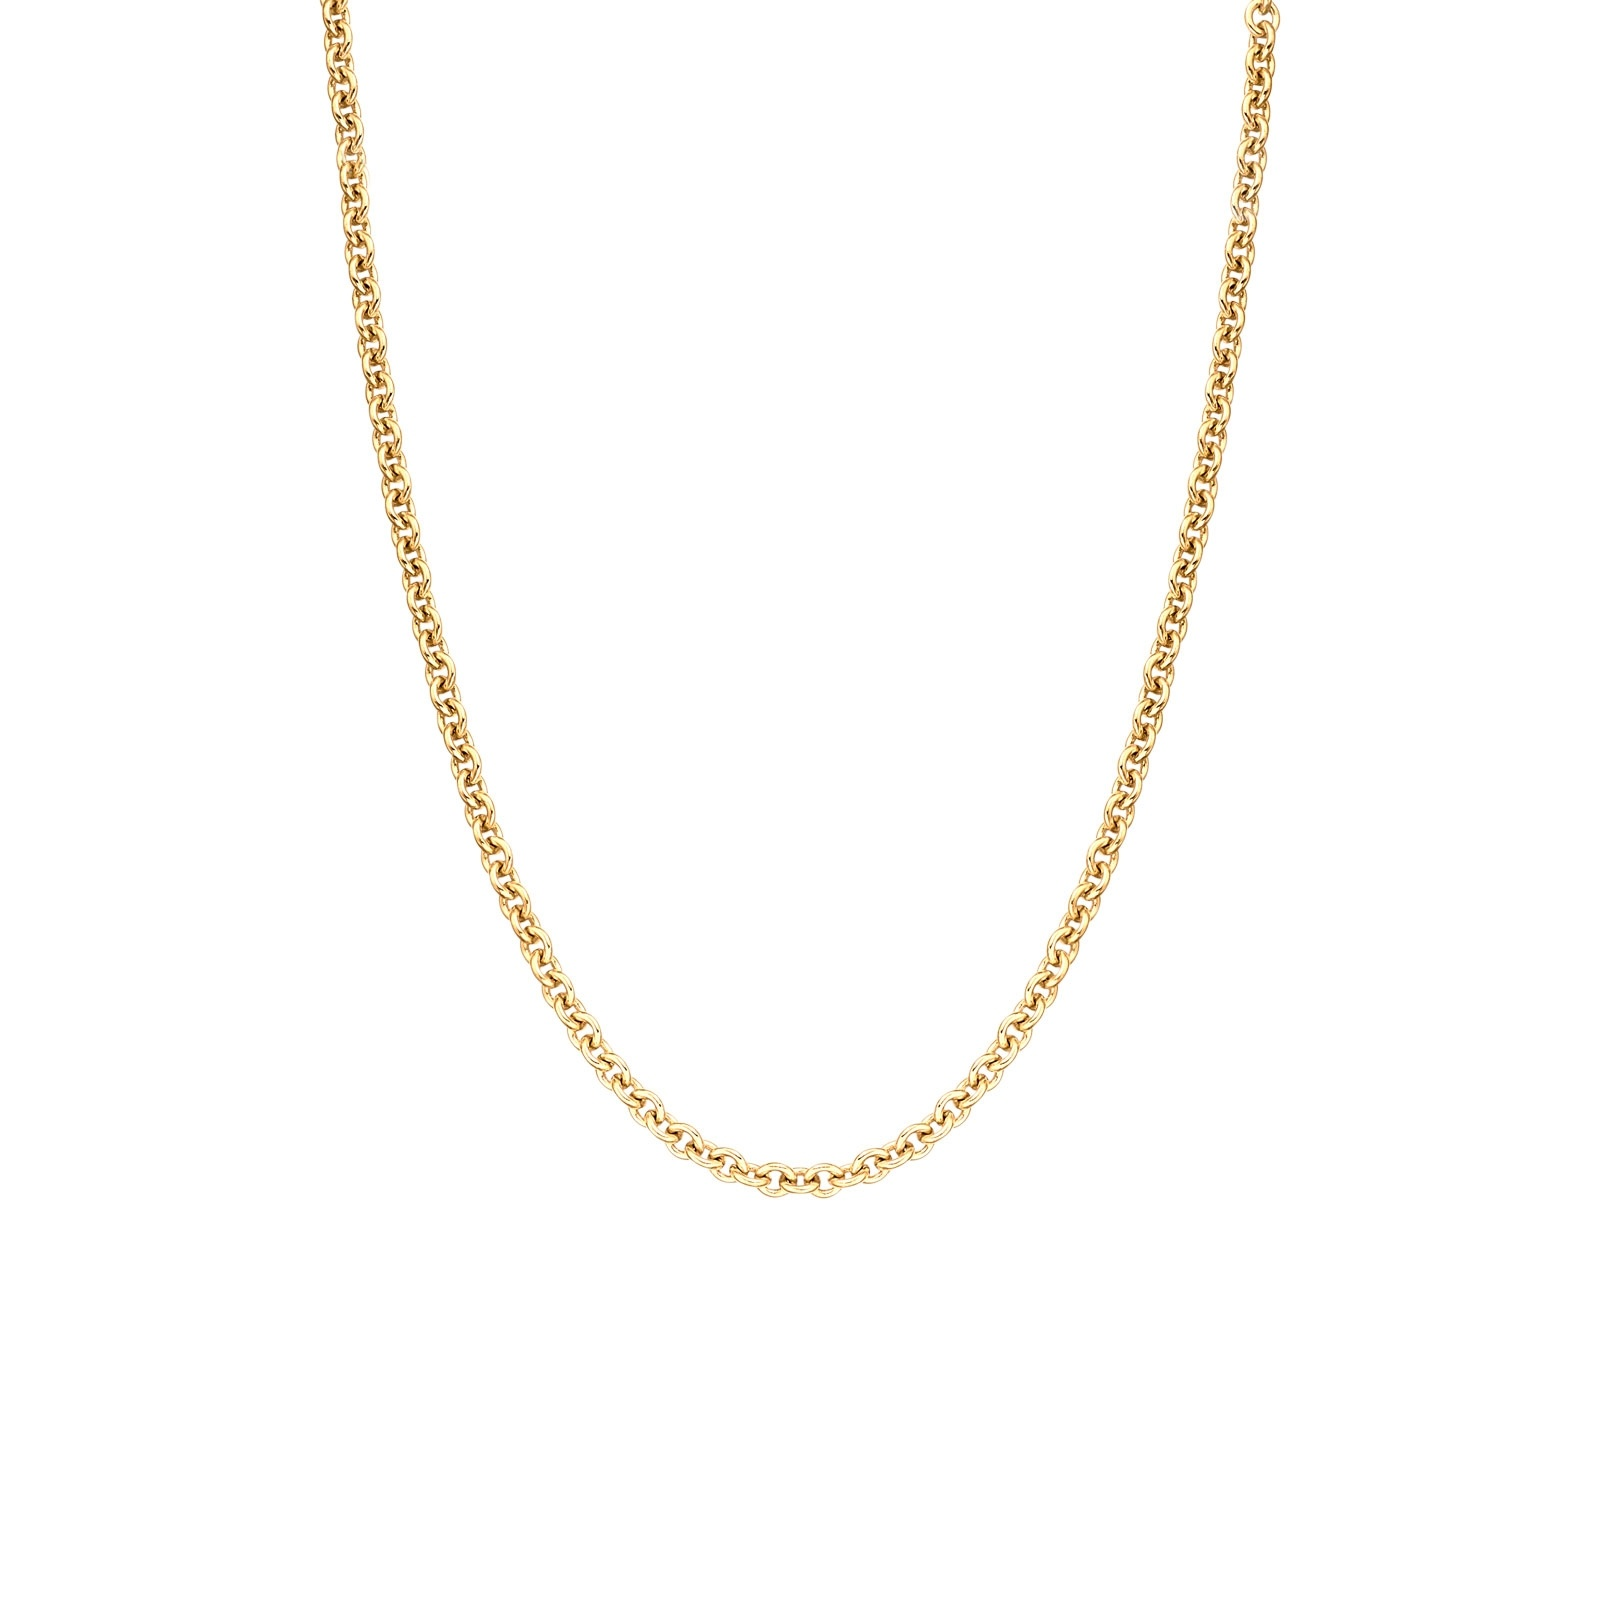 18 Carat Yellow Gold Trace Chain 1.6mm Width-CHVARYG1257-1